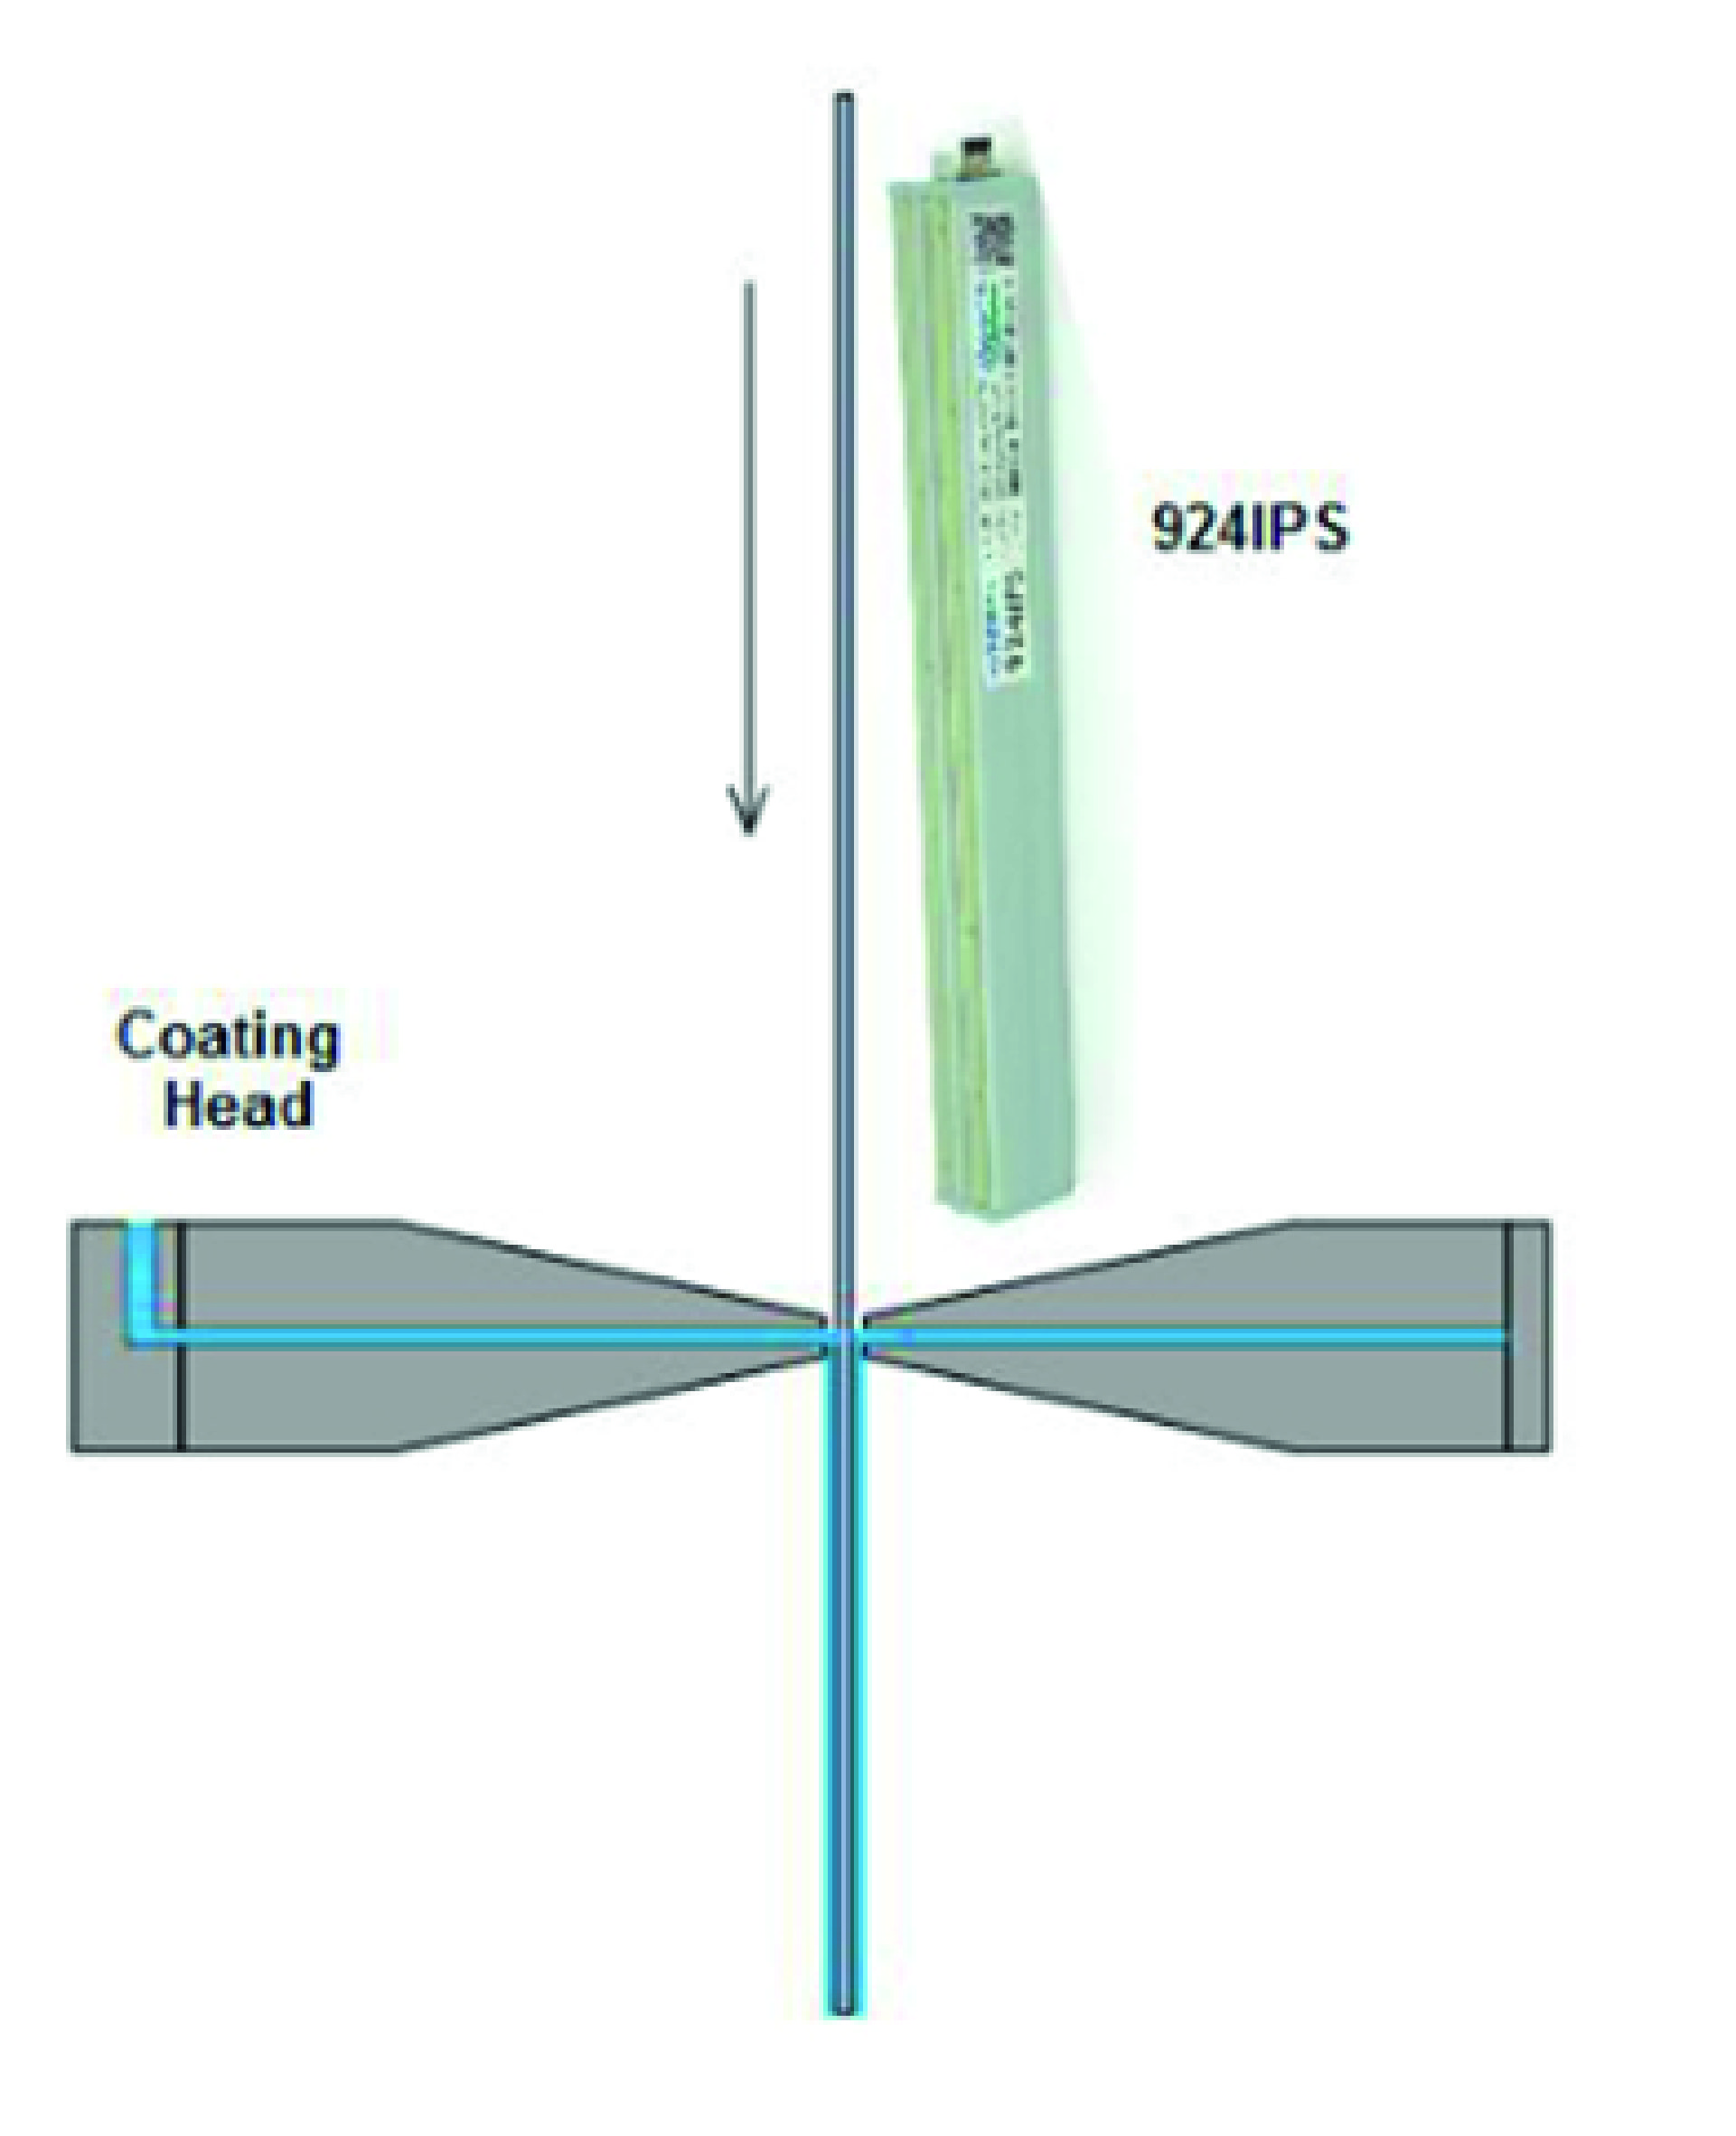 Preventing Static Issues During Fibre Optic Coating